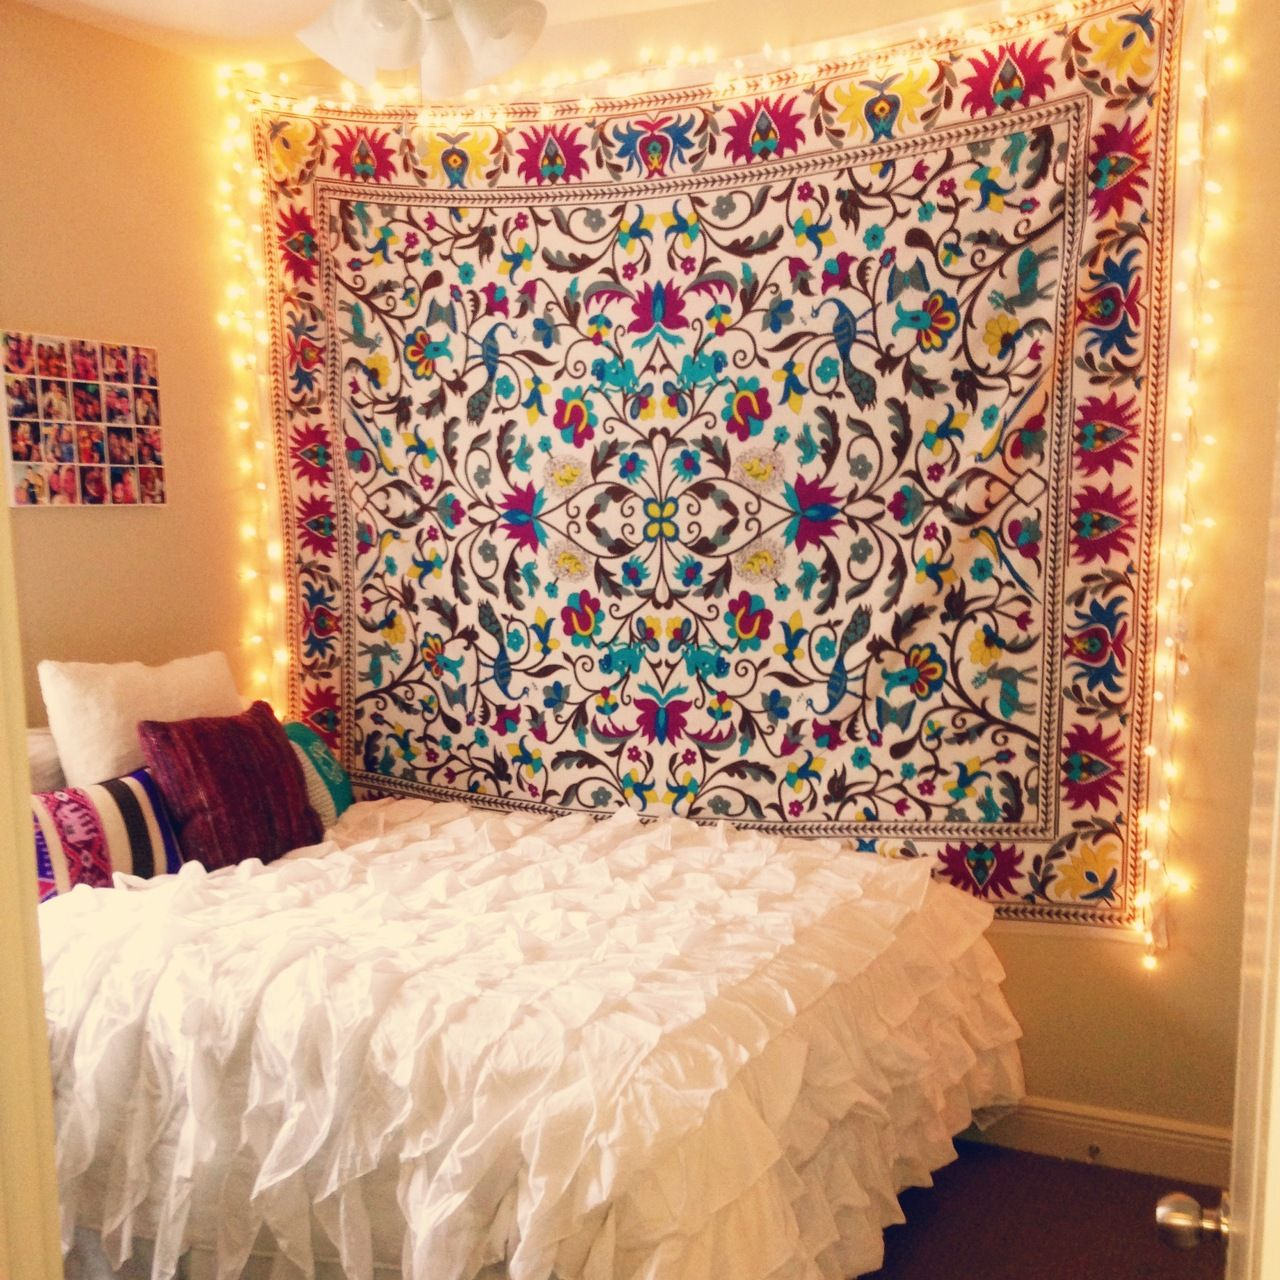 Decorative lights for dorm room - Top 10 Dorm Room Themes